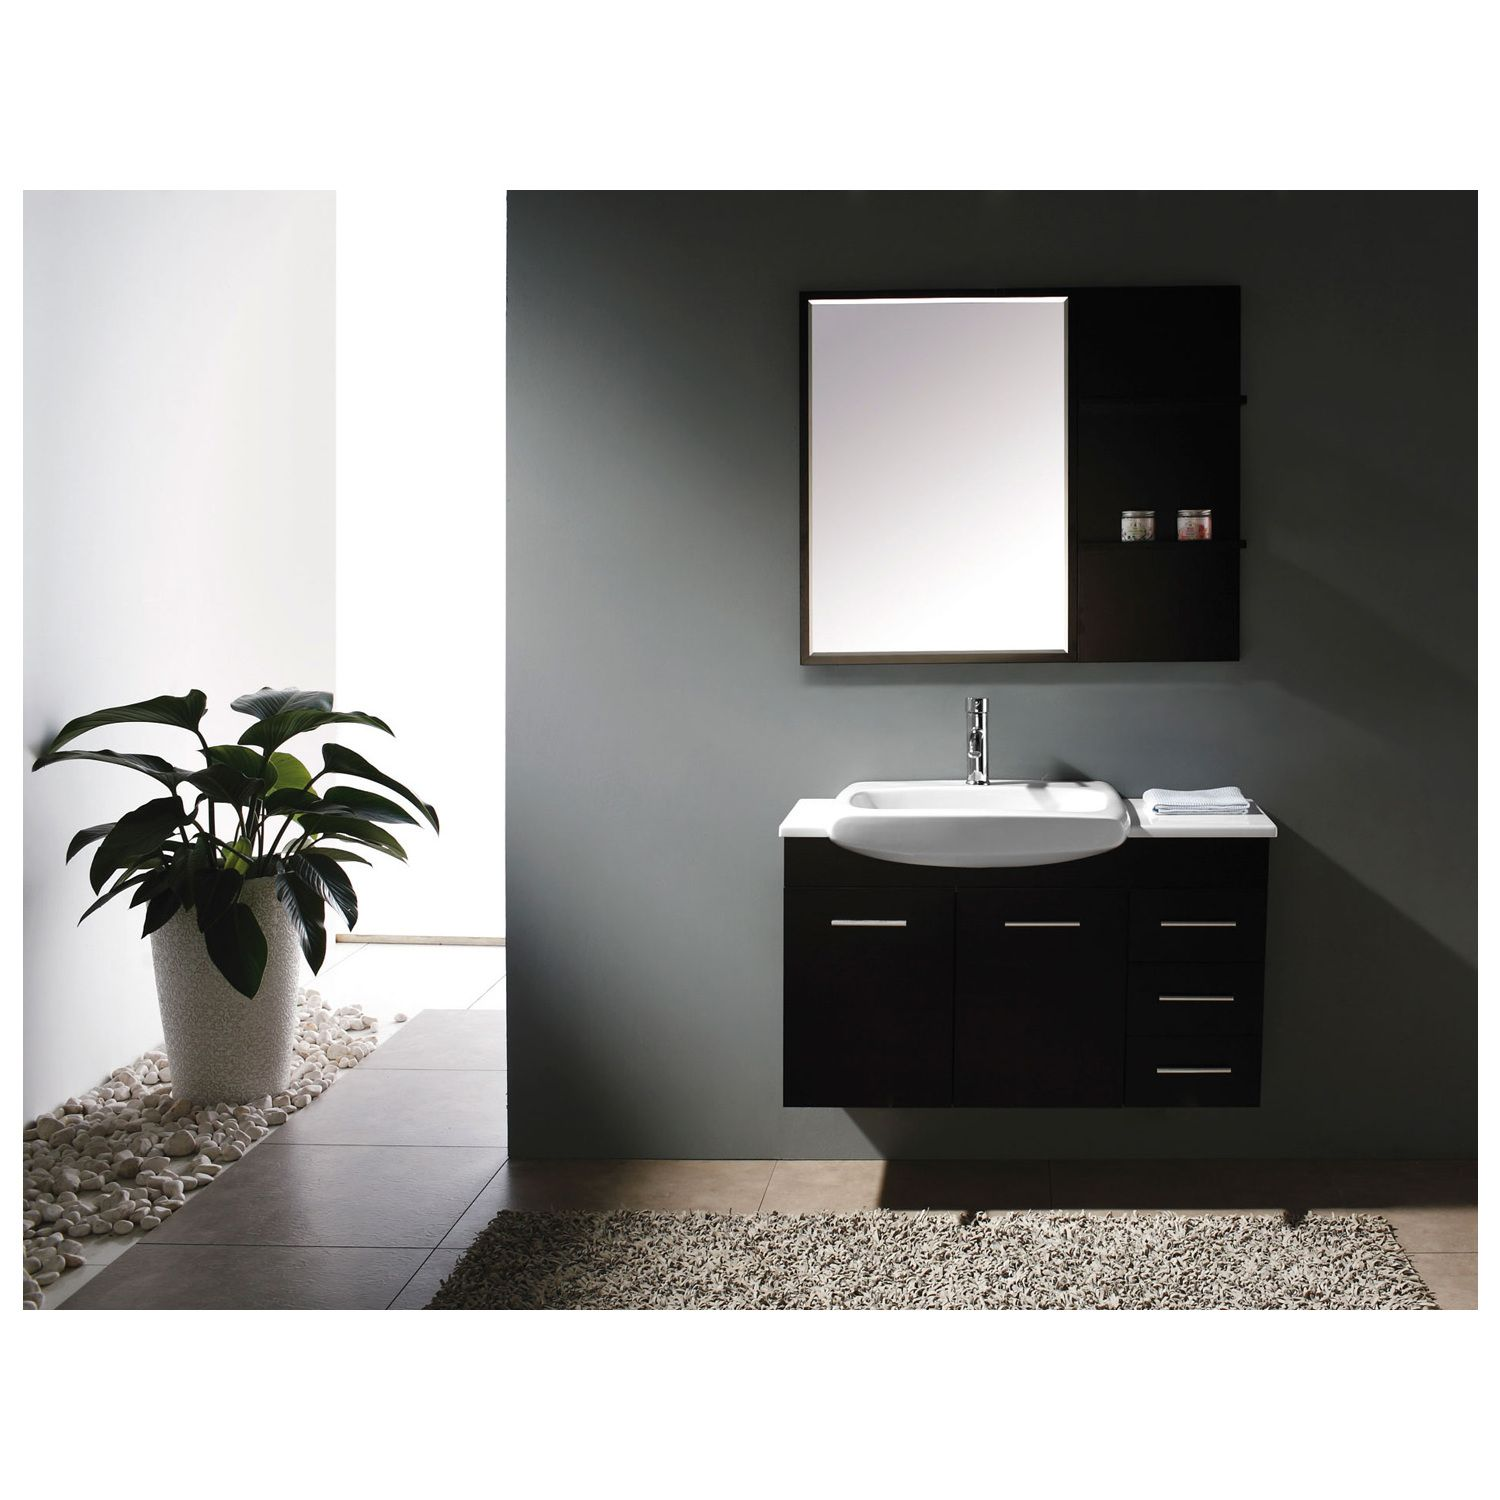 Web Image Gallery Buy James Martin Single Sink Vanity Espresso DISCONTINUED at Get free shipping and factory direct savings on James Martin Single Sink Vanity